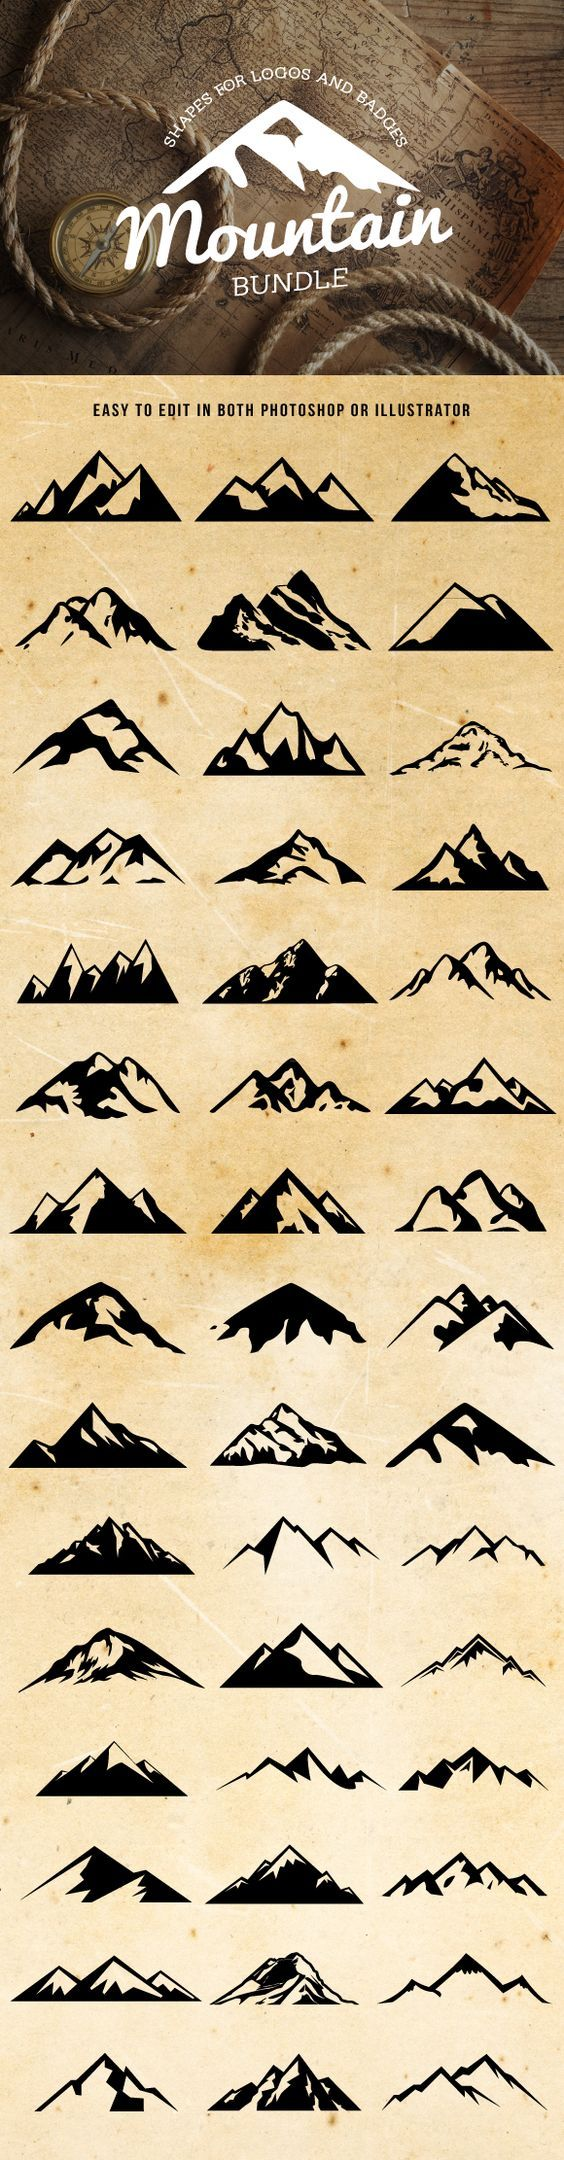 Check out Mountain Shapes For Logos Bundle by lovepower on Creative Market: